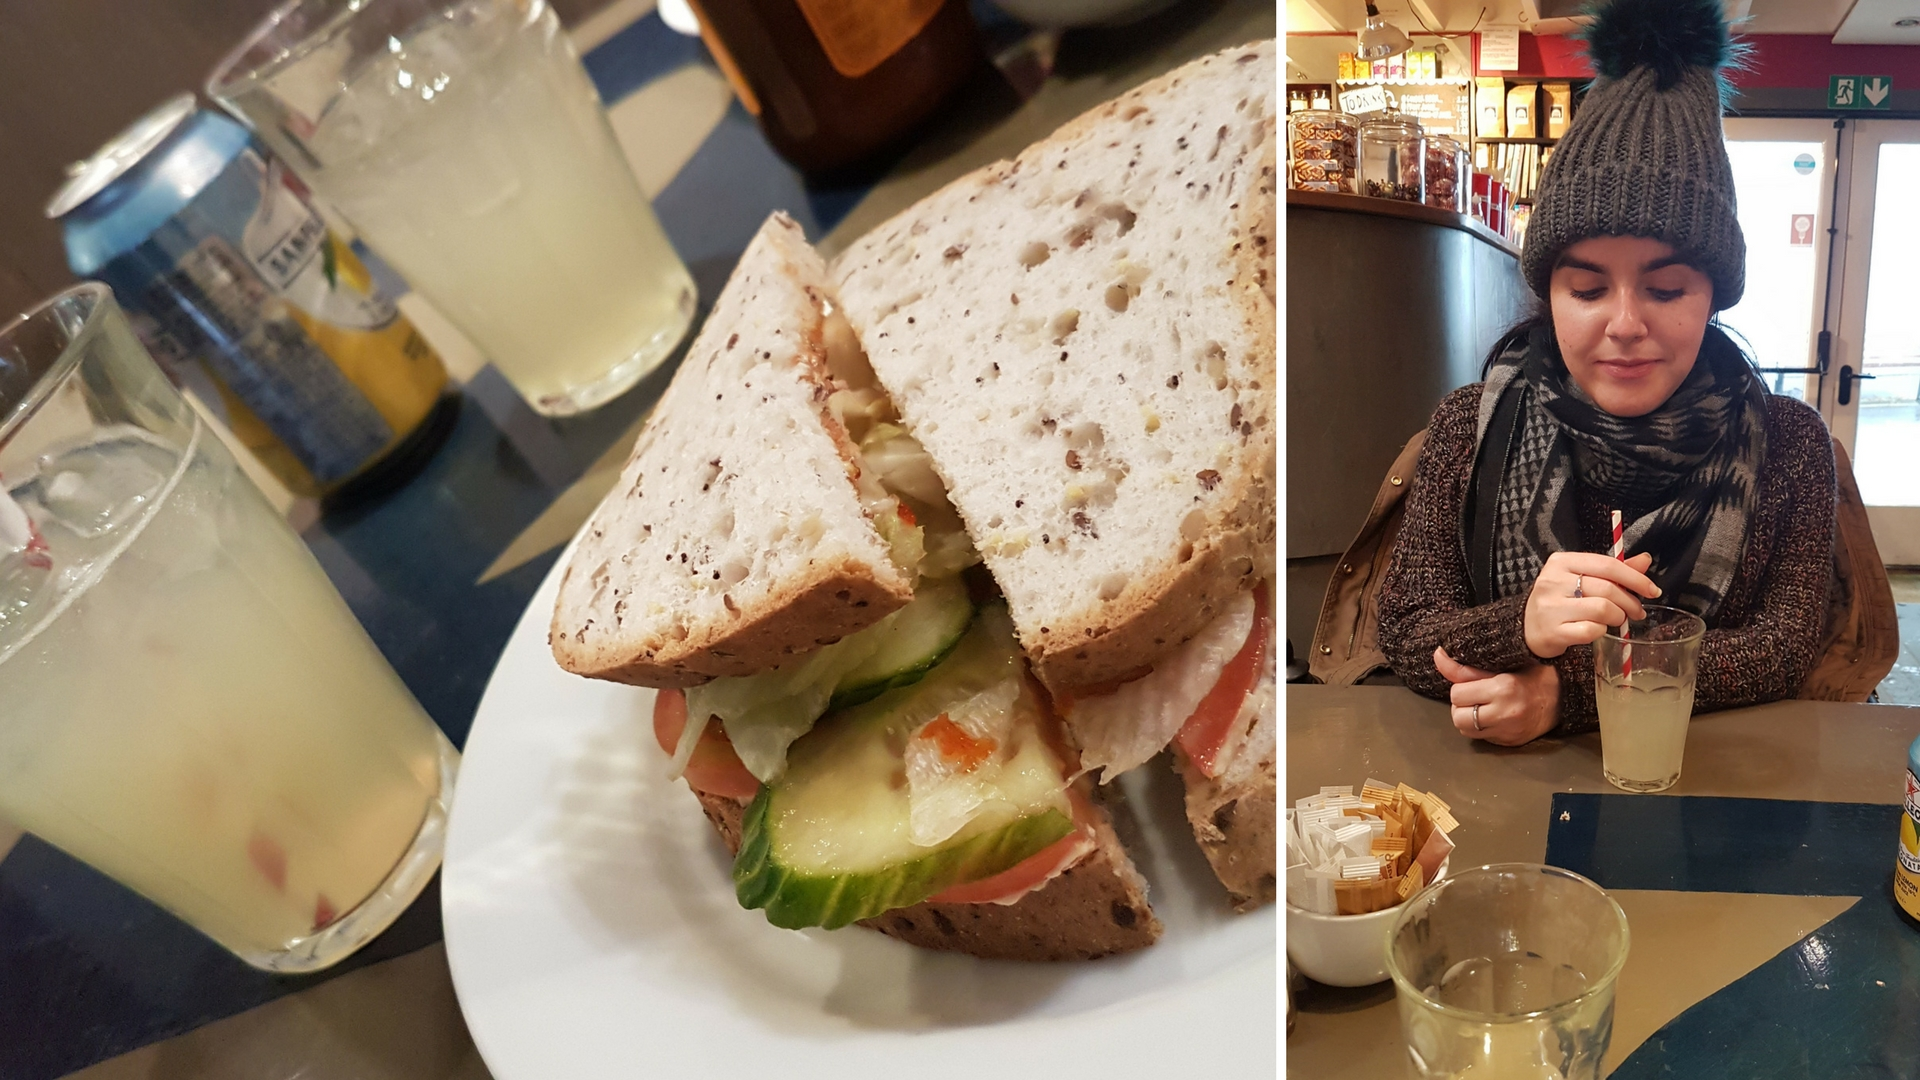 Vegan sandwich and homemade lemonade at Peerie Shop Cafe